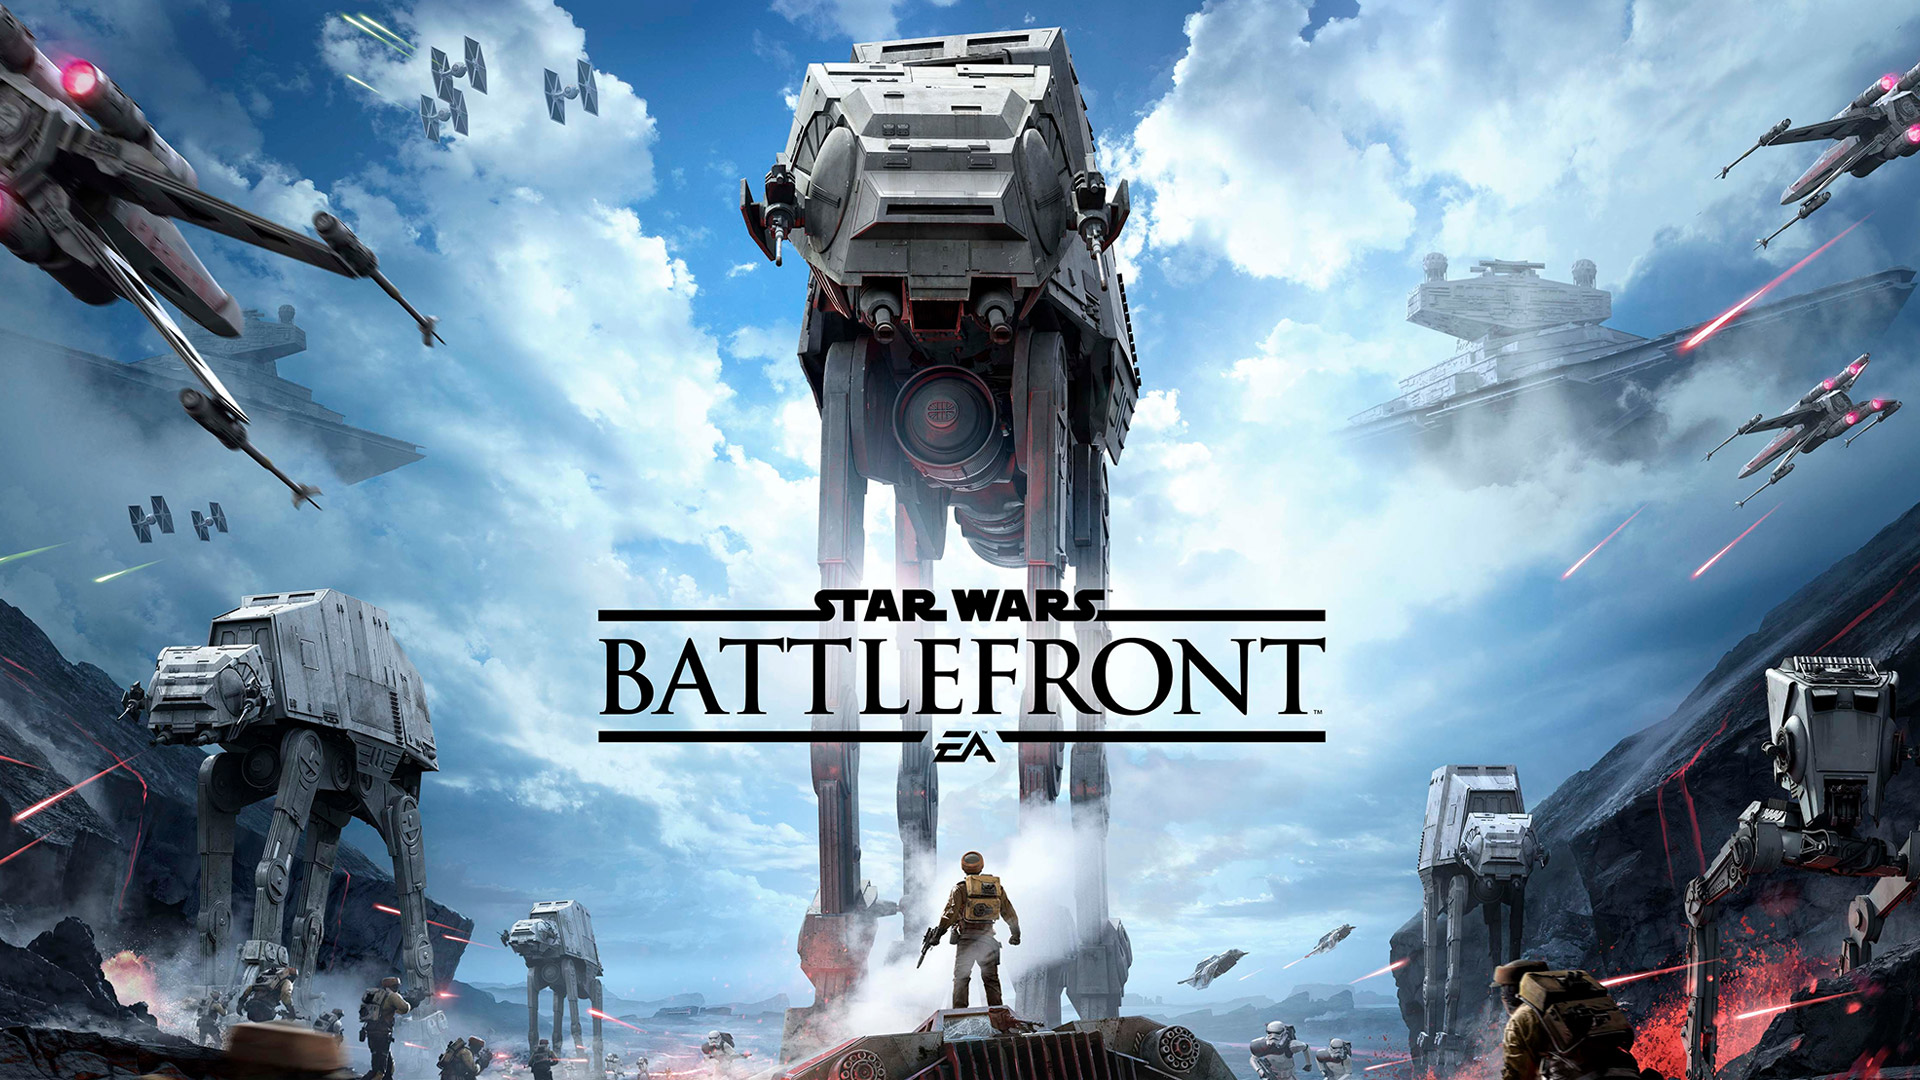 The Future of Star Wars Battlefront in 2017